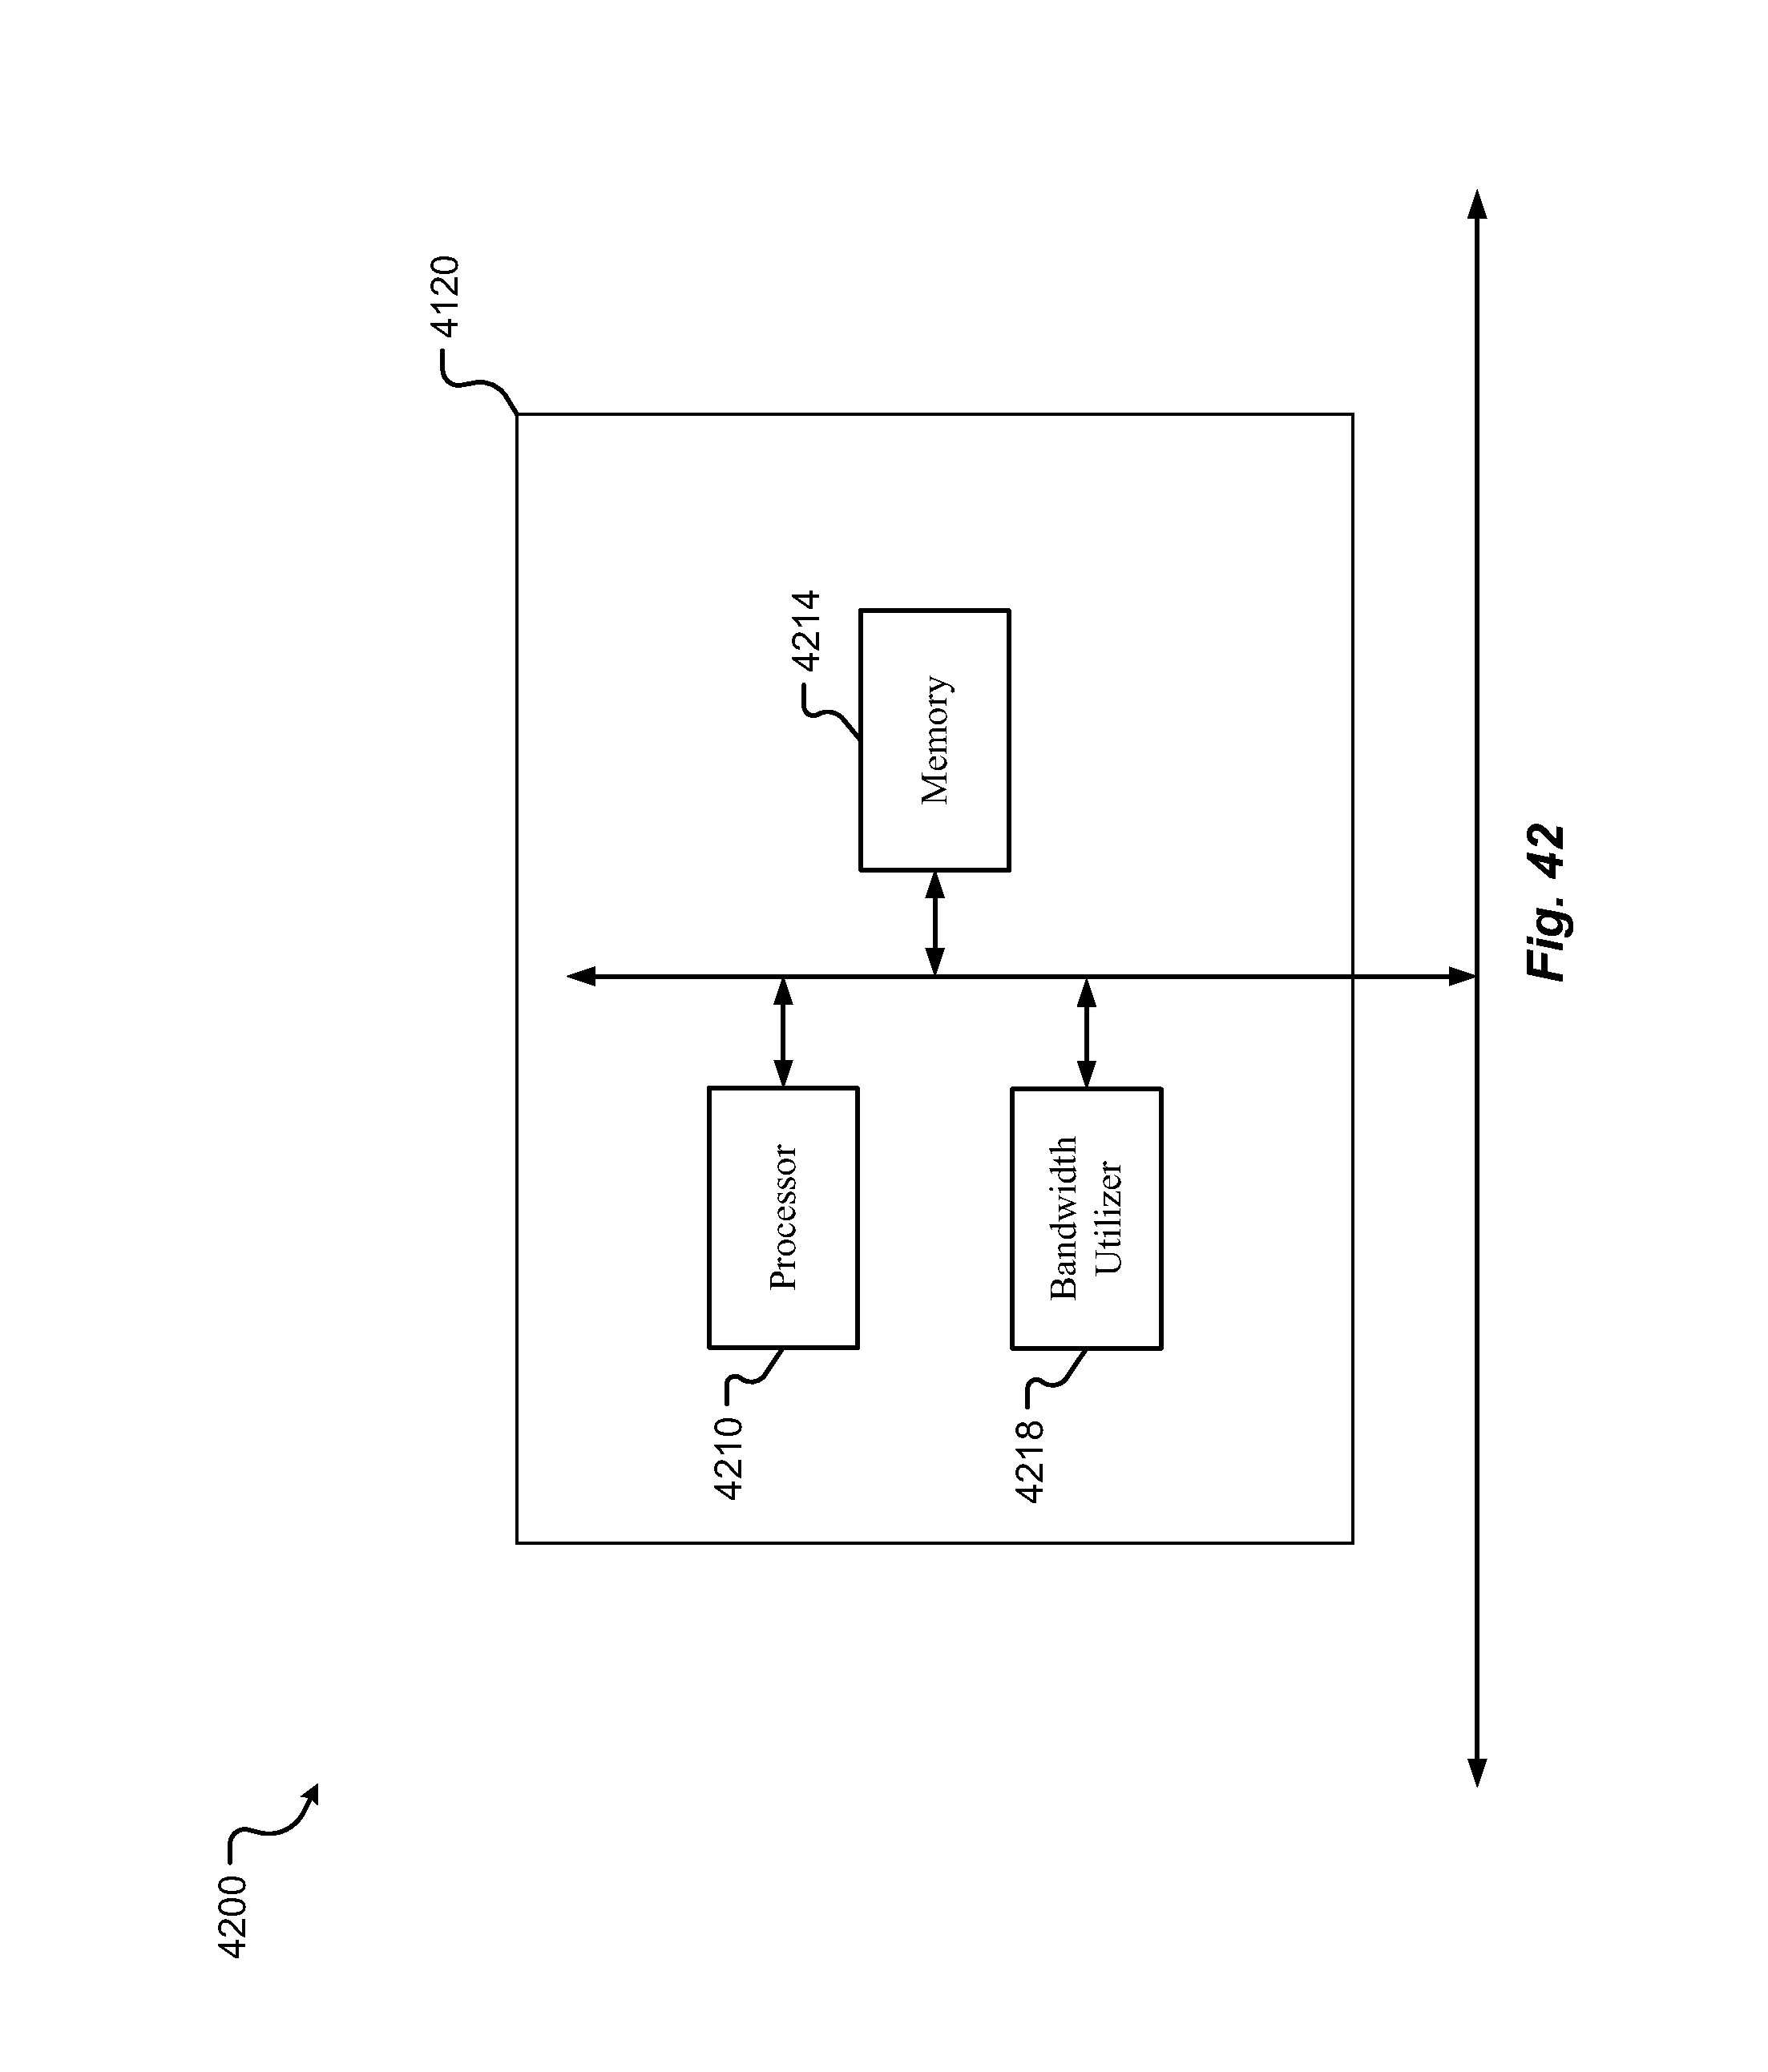 Constant Current Dummy Load In An Hdd Cooler